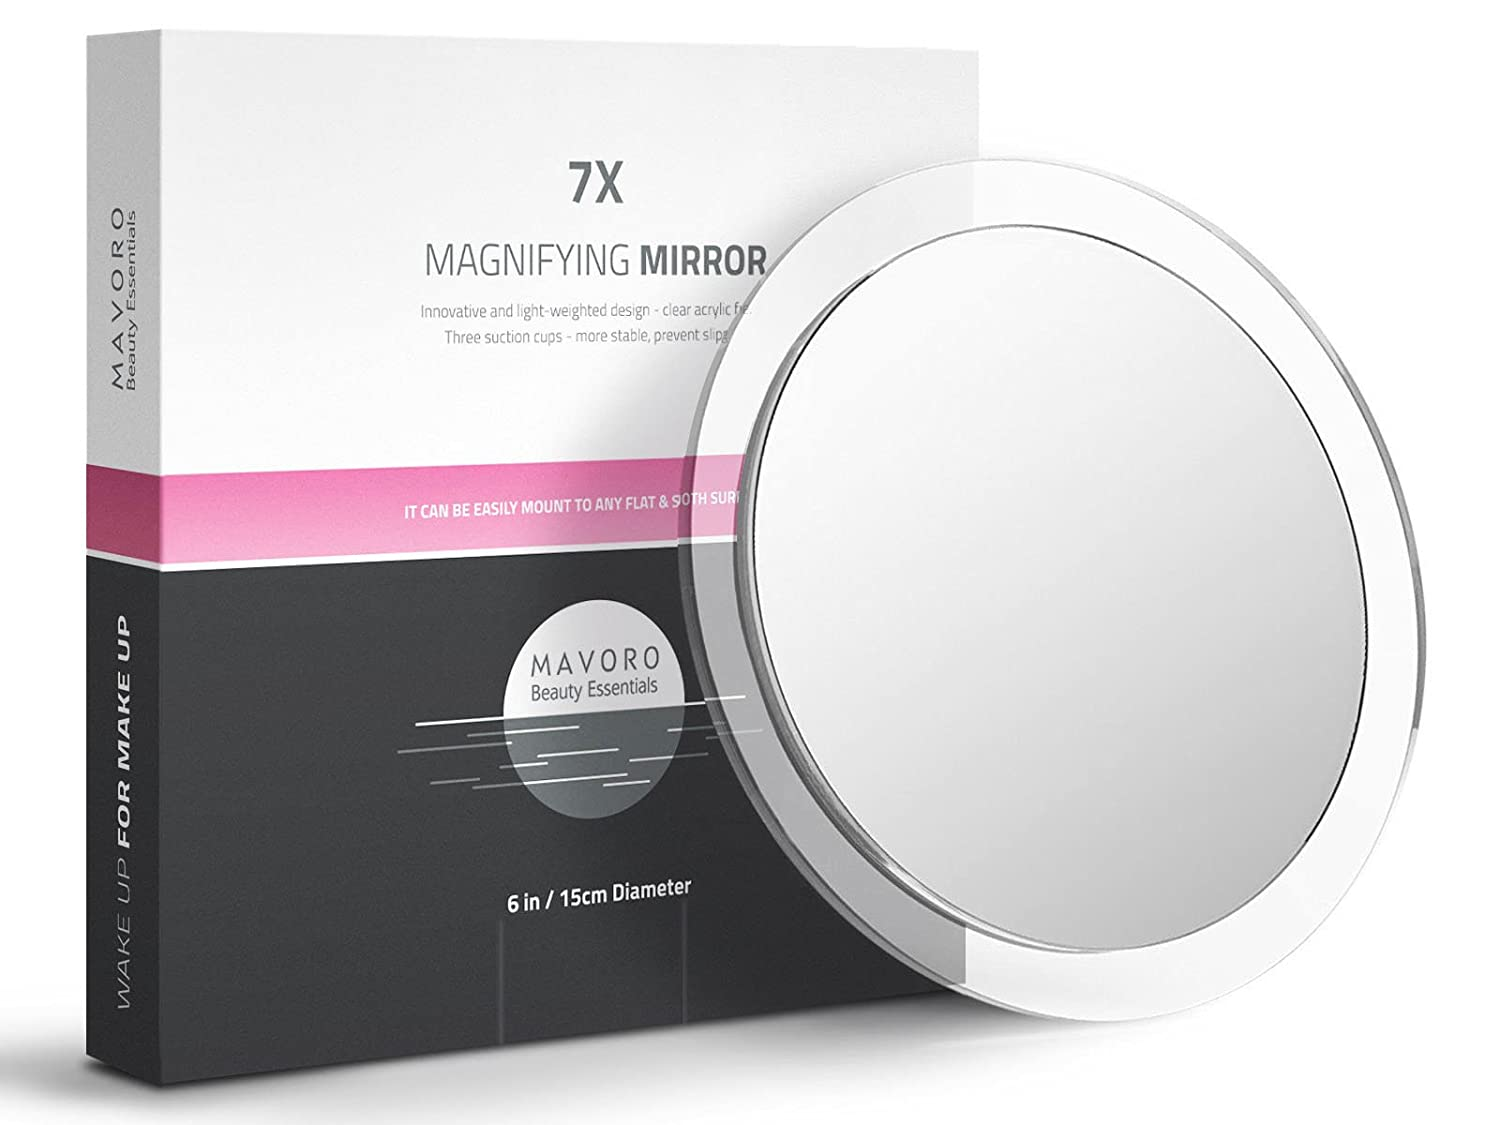 Mavoro Magnifying Mirror with Suction Cups - Triple Suction Cup Stick on Mirror with 7X Magnification. Portable Travel Makeup Mirror, Magnified Cosmetic Mirror with Cloth. Mirrors for Dorm Decor